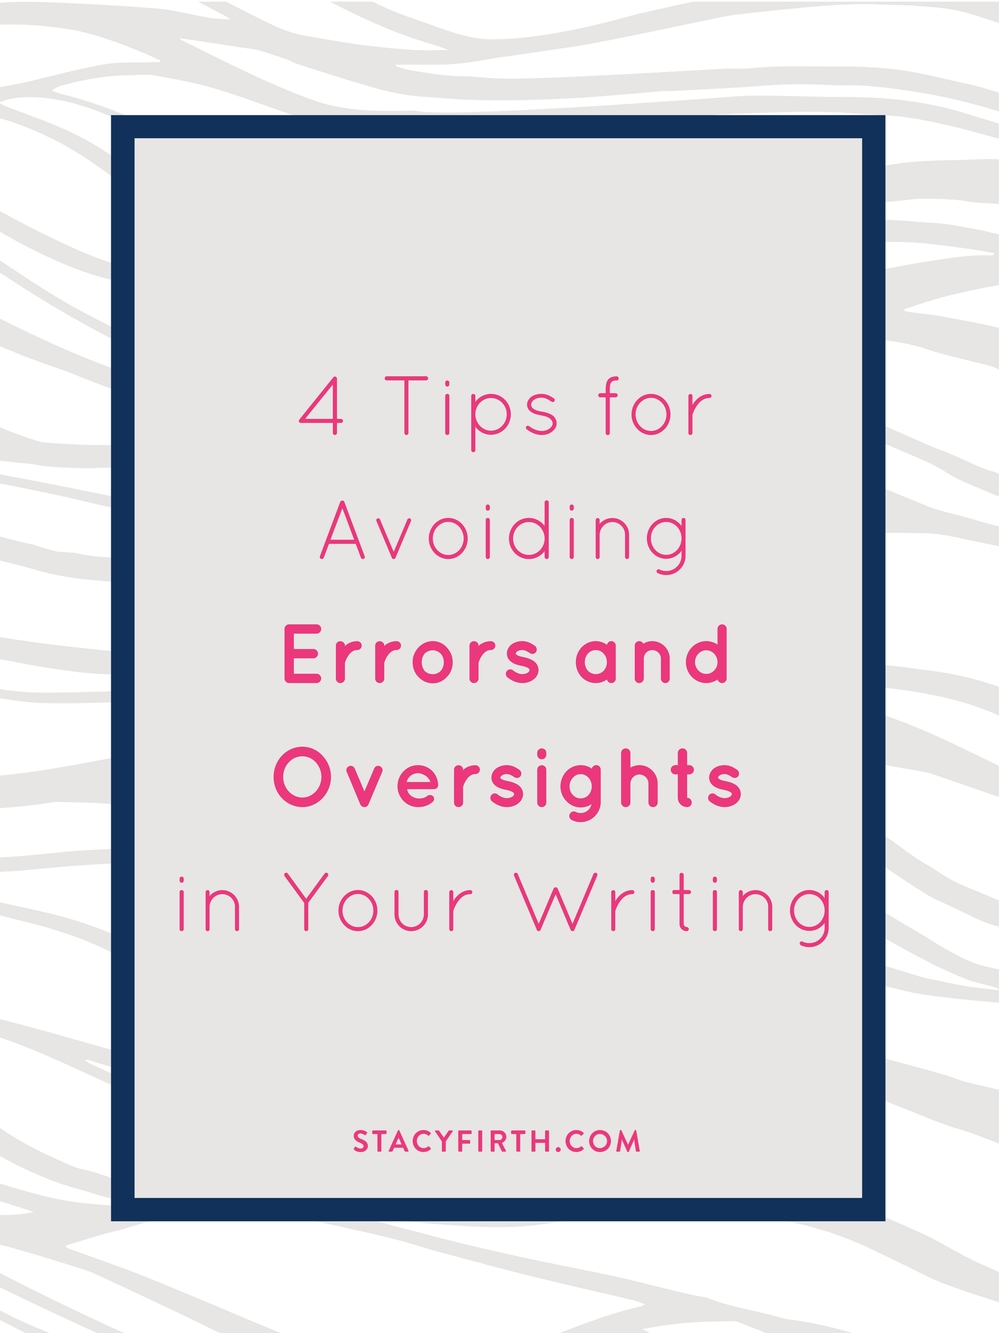 4 Tips for Avoiding Errors and Oversights in Your Writing